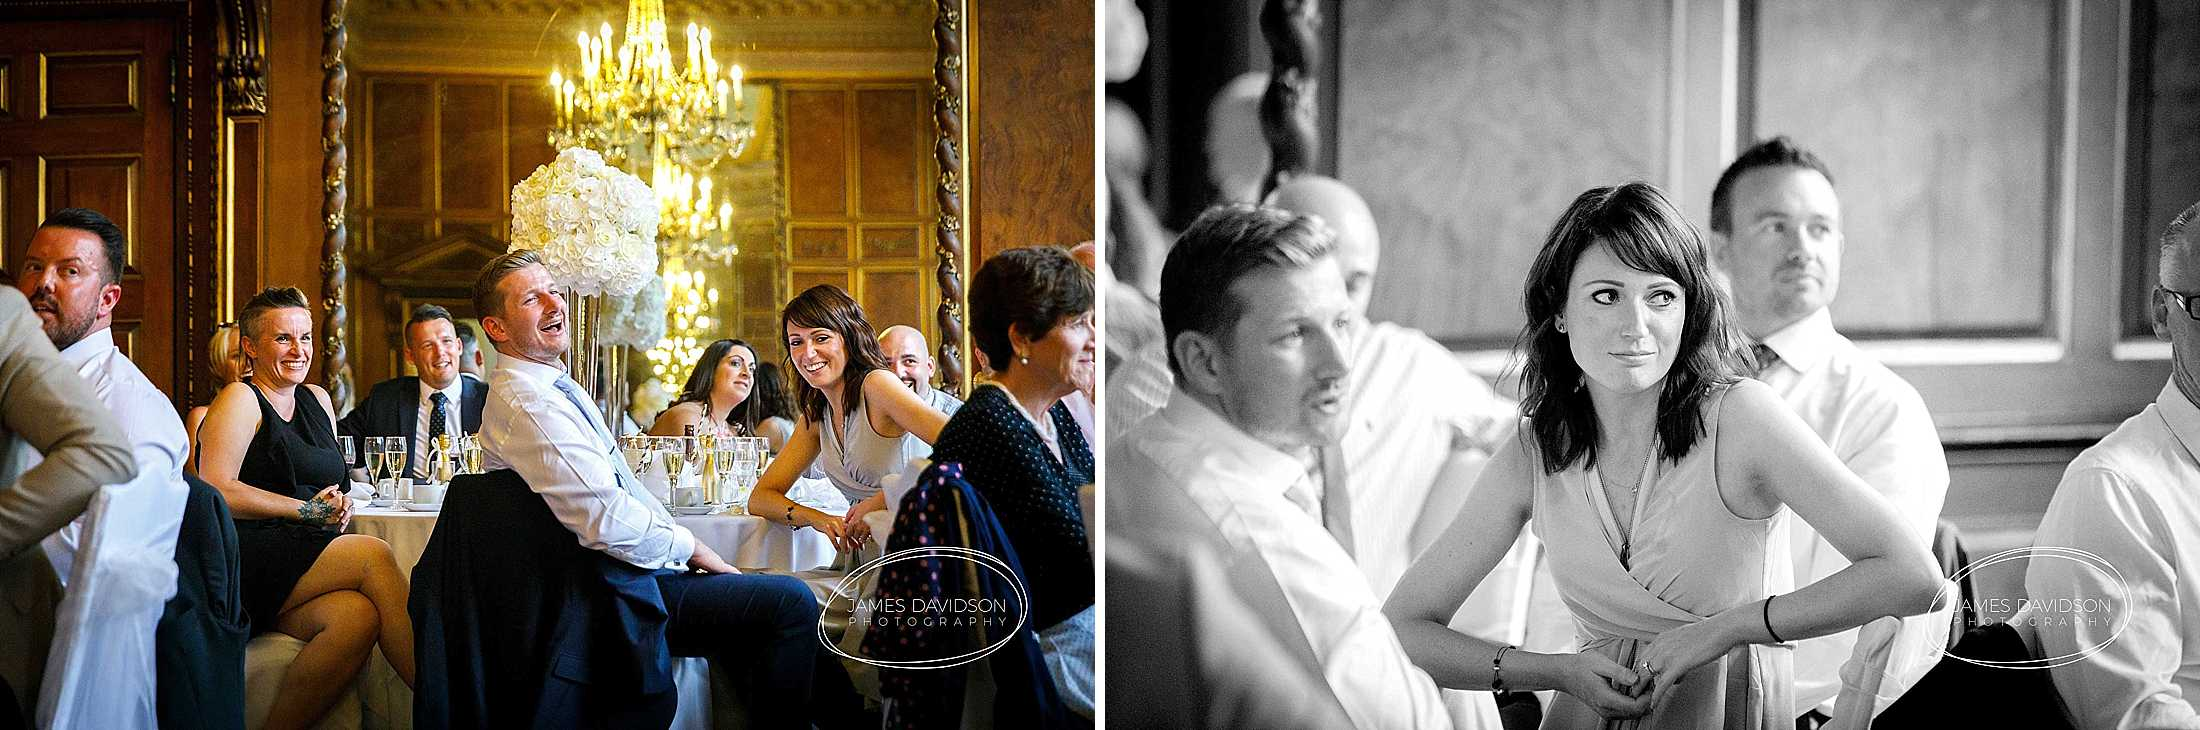 gosfield-hall-wedding-photography-124